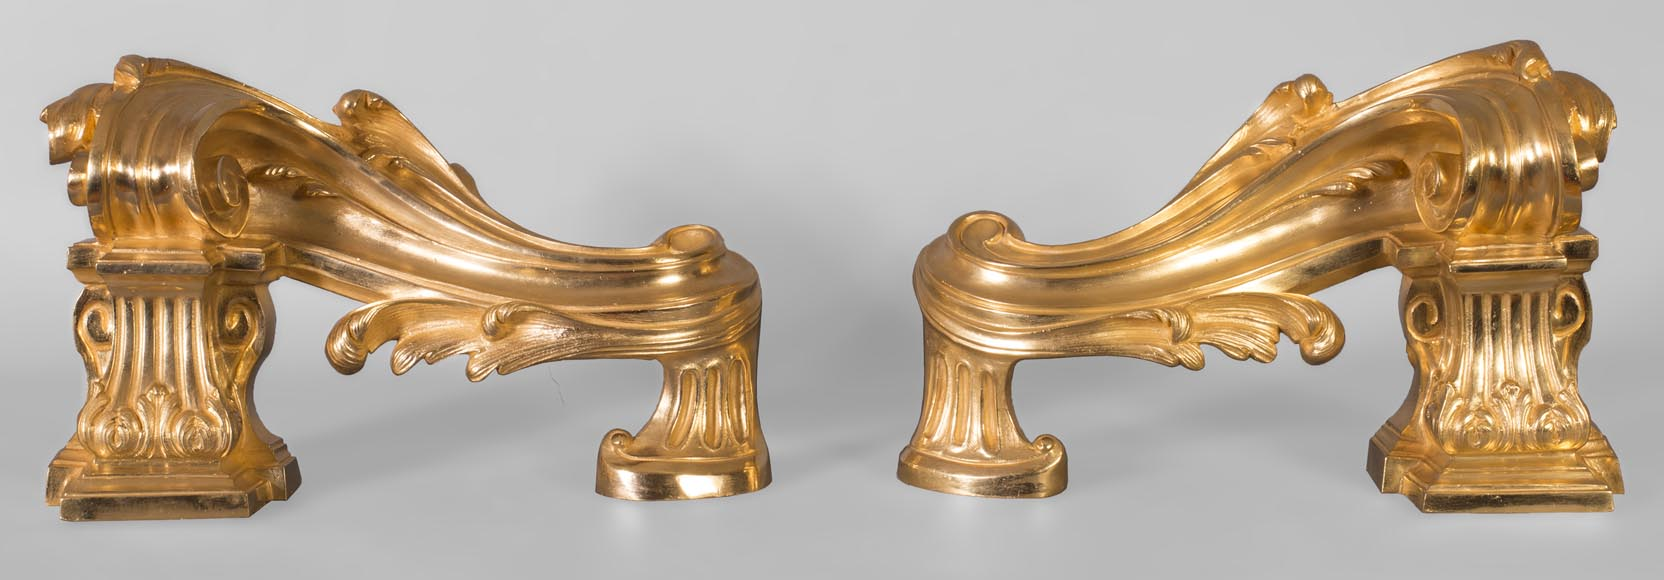 Pair of Napoleon III style chenets, in gilded bronze, signed Henri Vian-0